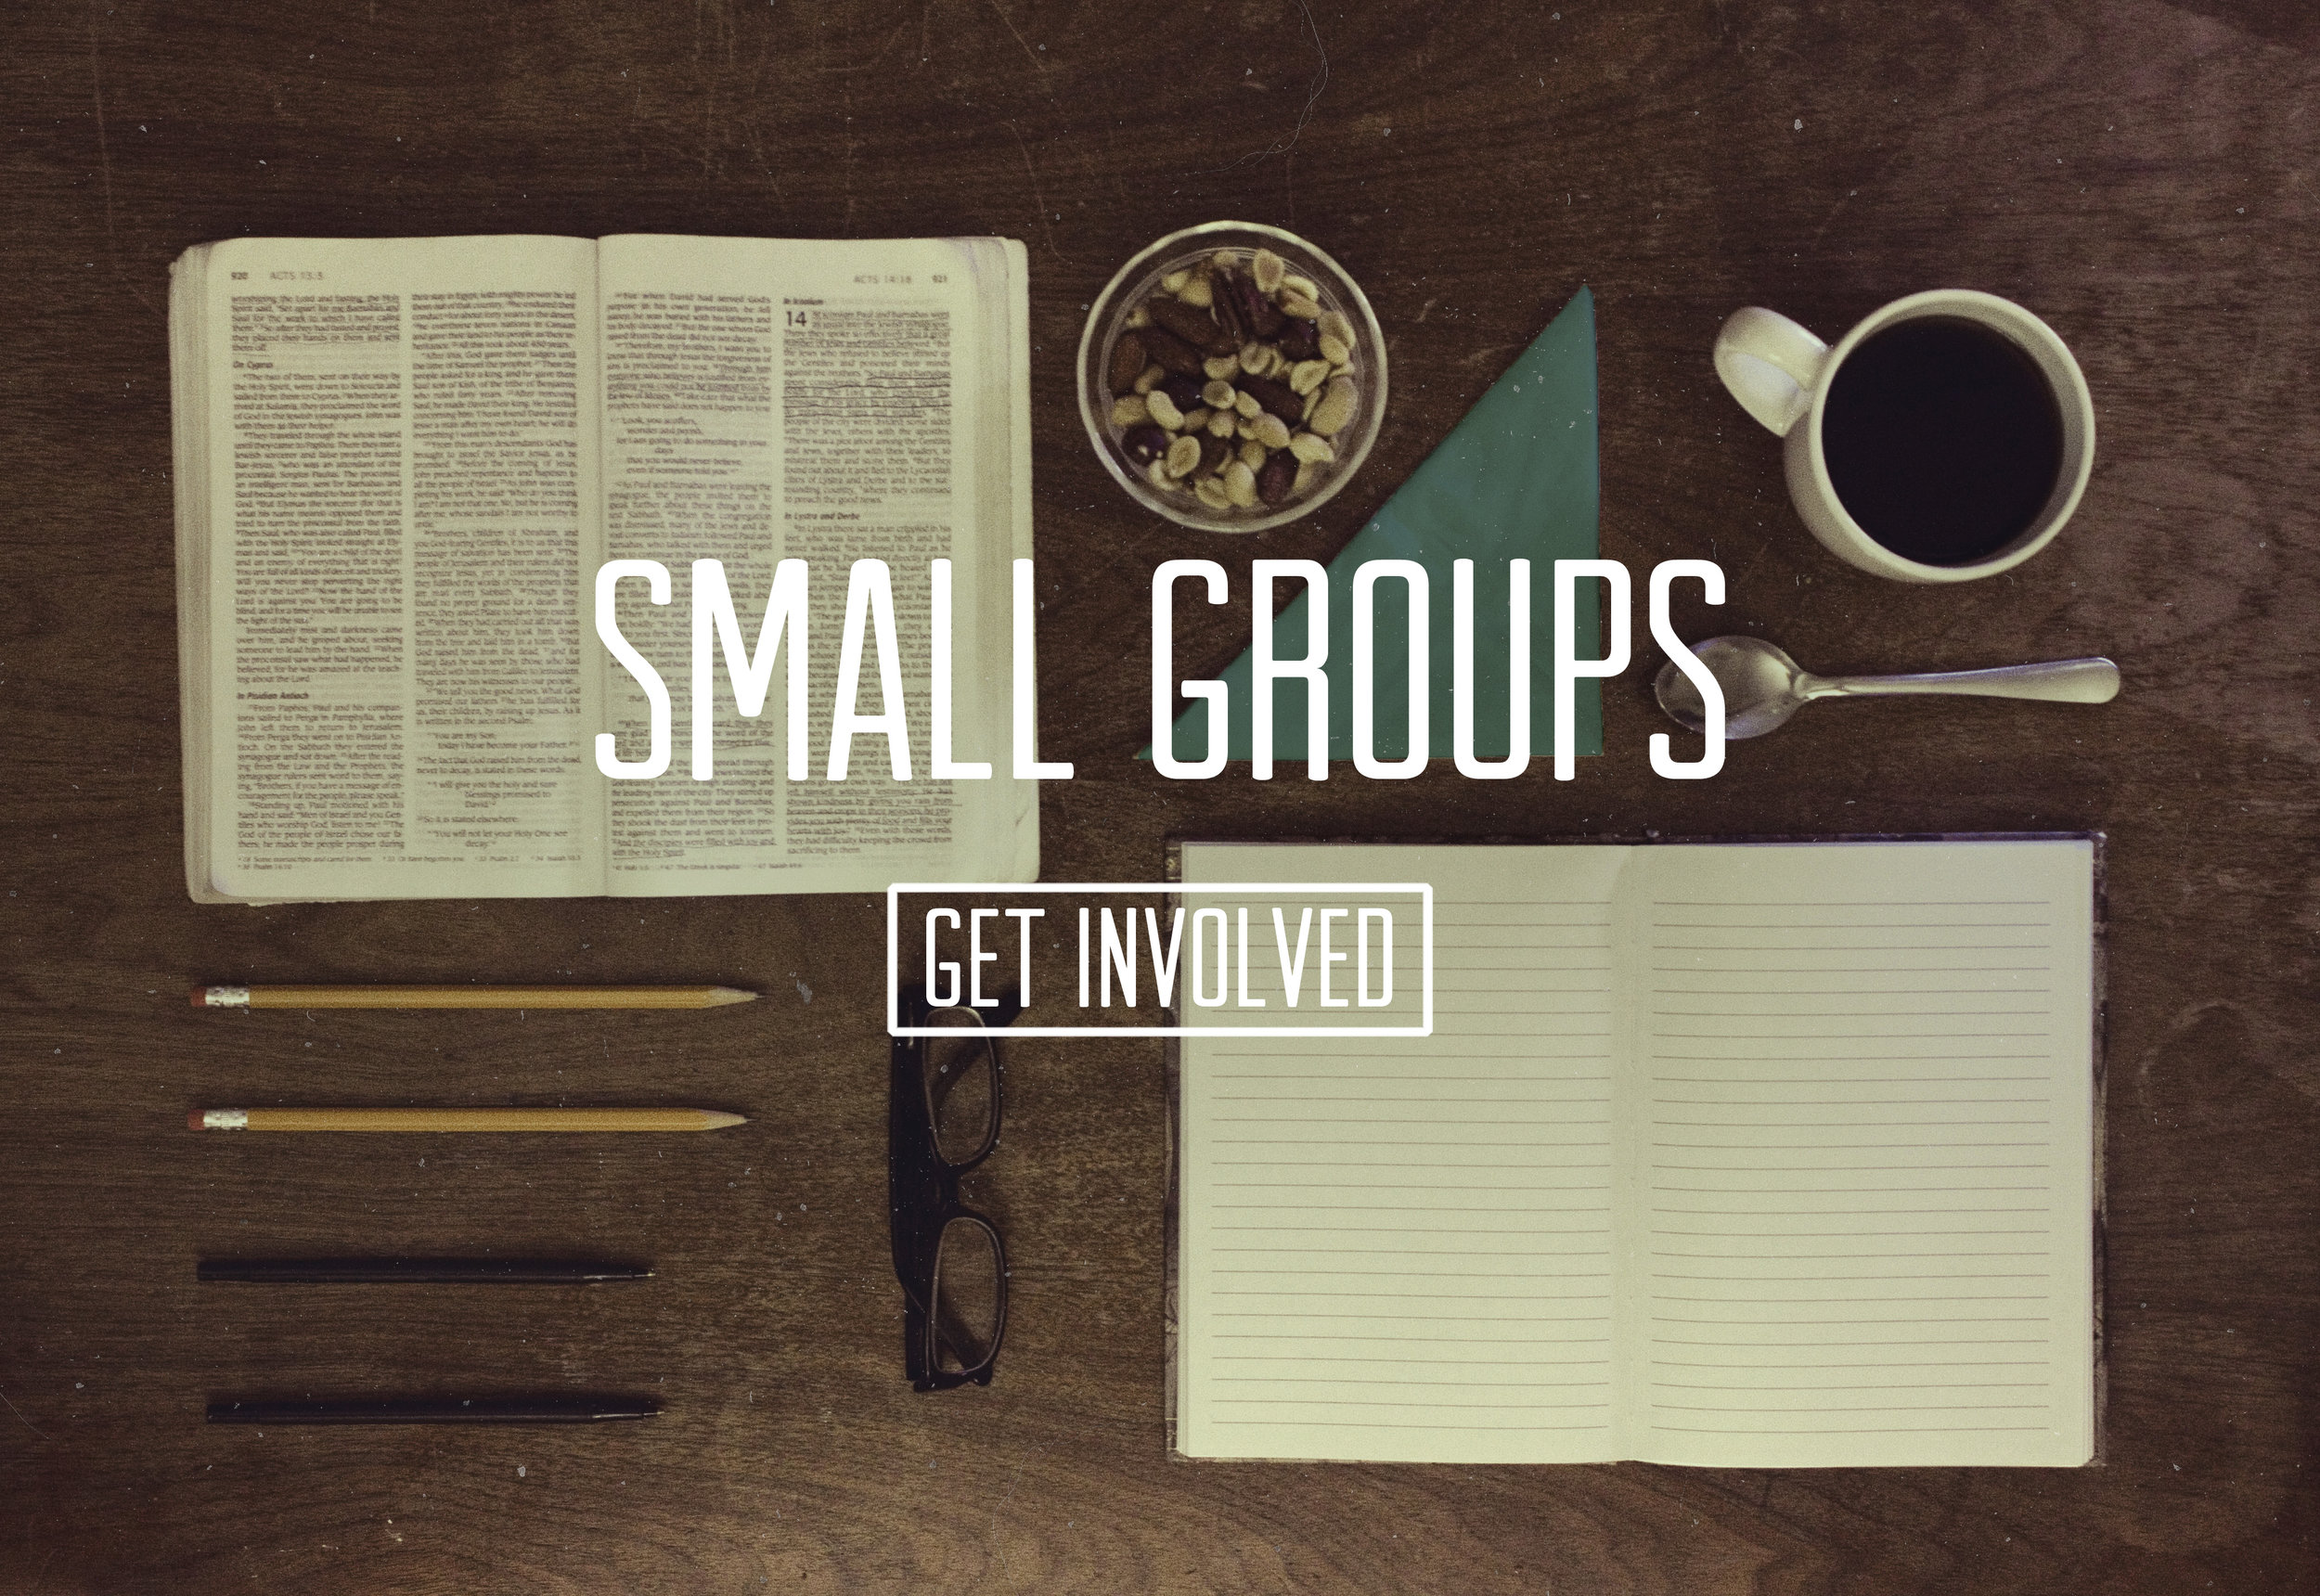 Small Groups - Small Groups at North Lake Presbyterian Church are an important part of our Discipleship. Currently, we have over 25 small groups that meet regularly and we are growing. If you would like to facilitate or join a small group, visit the Discipleship desk. There you will find sign-up sheets and a list of small groups who are accepting members.More information available here.Contact the Small Group Ministry Team: smallgroups@northlakepc.org OrCall the church office at 352-753-8484 and leave a message for Linda Caporale, the Small Group Ministry Coordinator. She will be happy to call you.